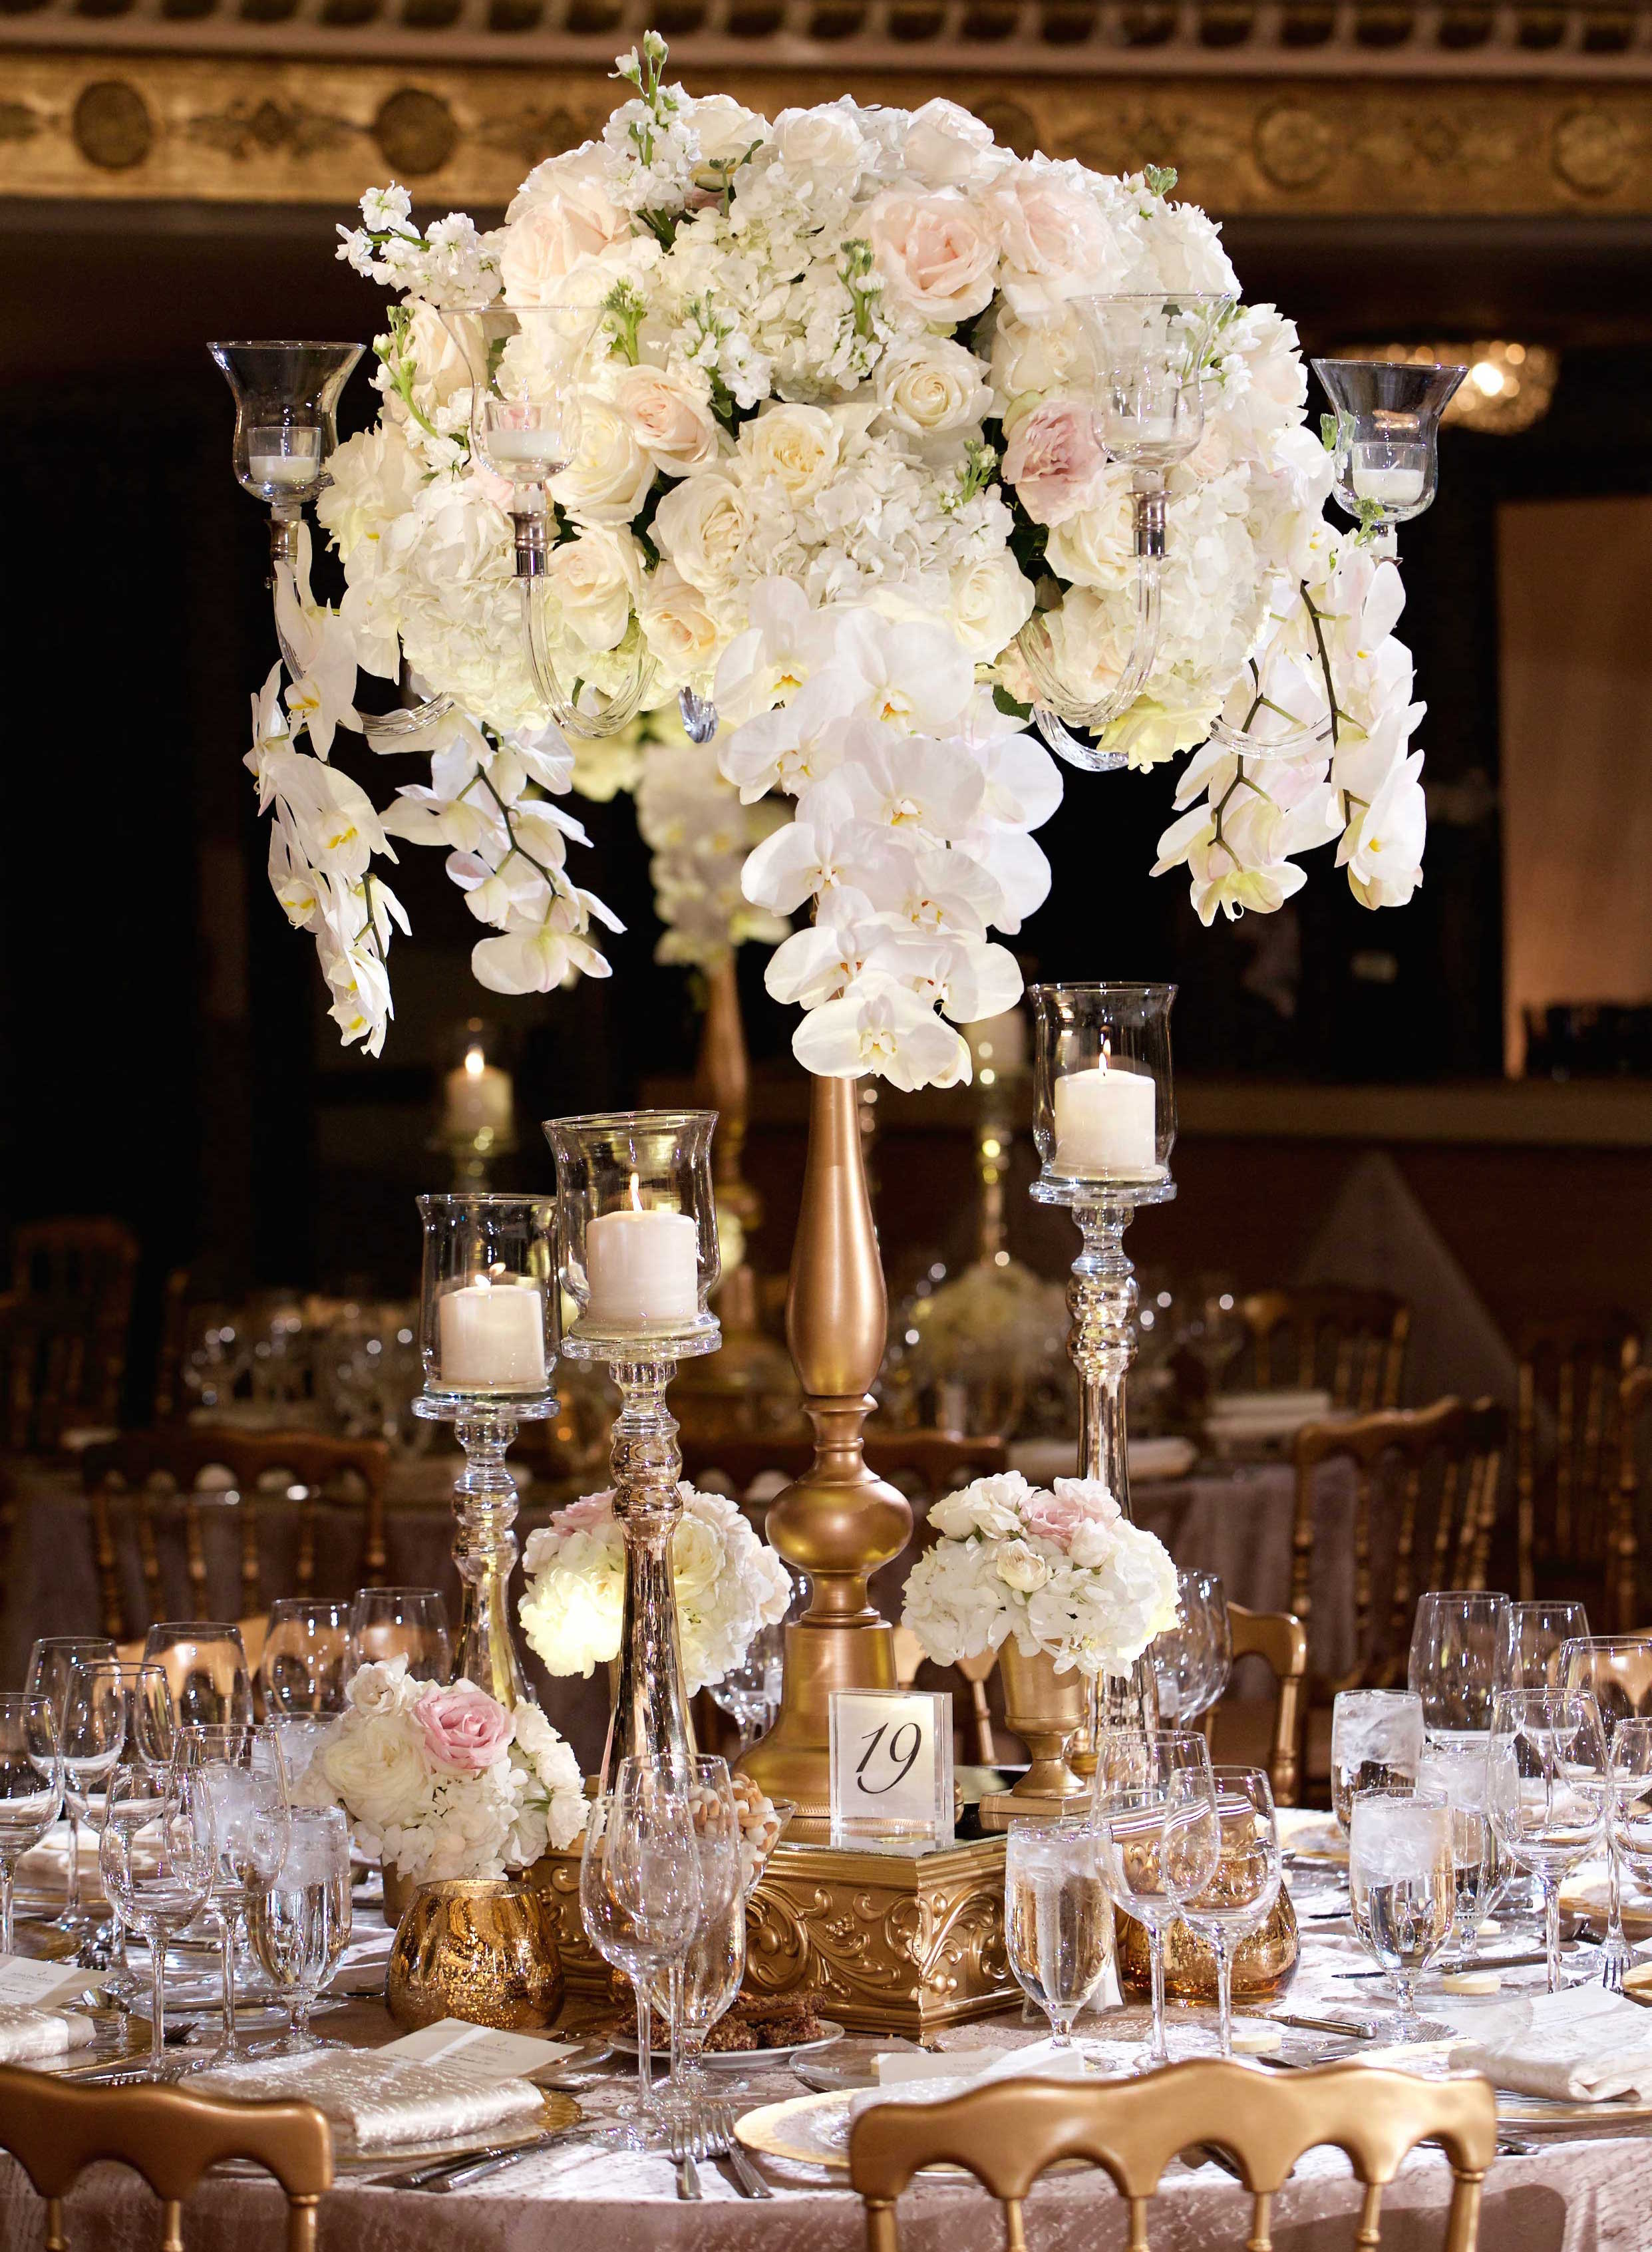 Tall wedding centerpiece white orchid blush roses on gold stand